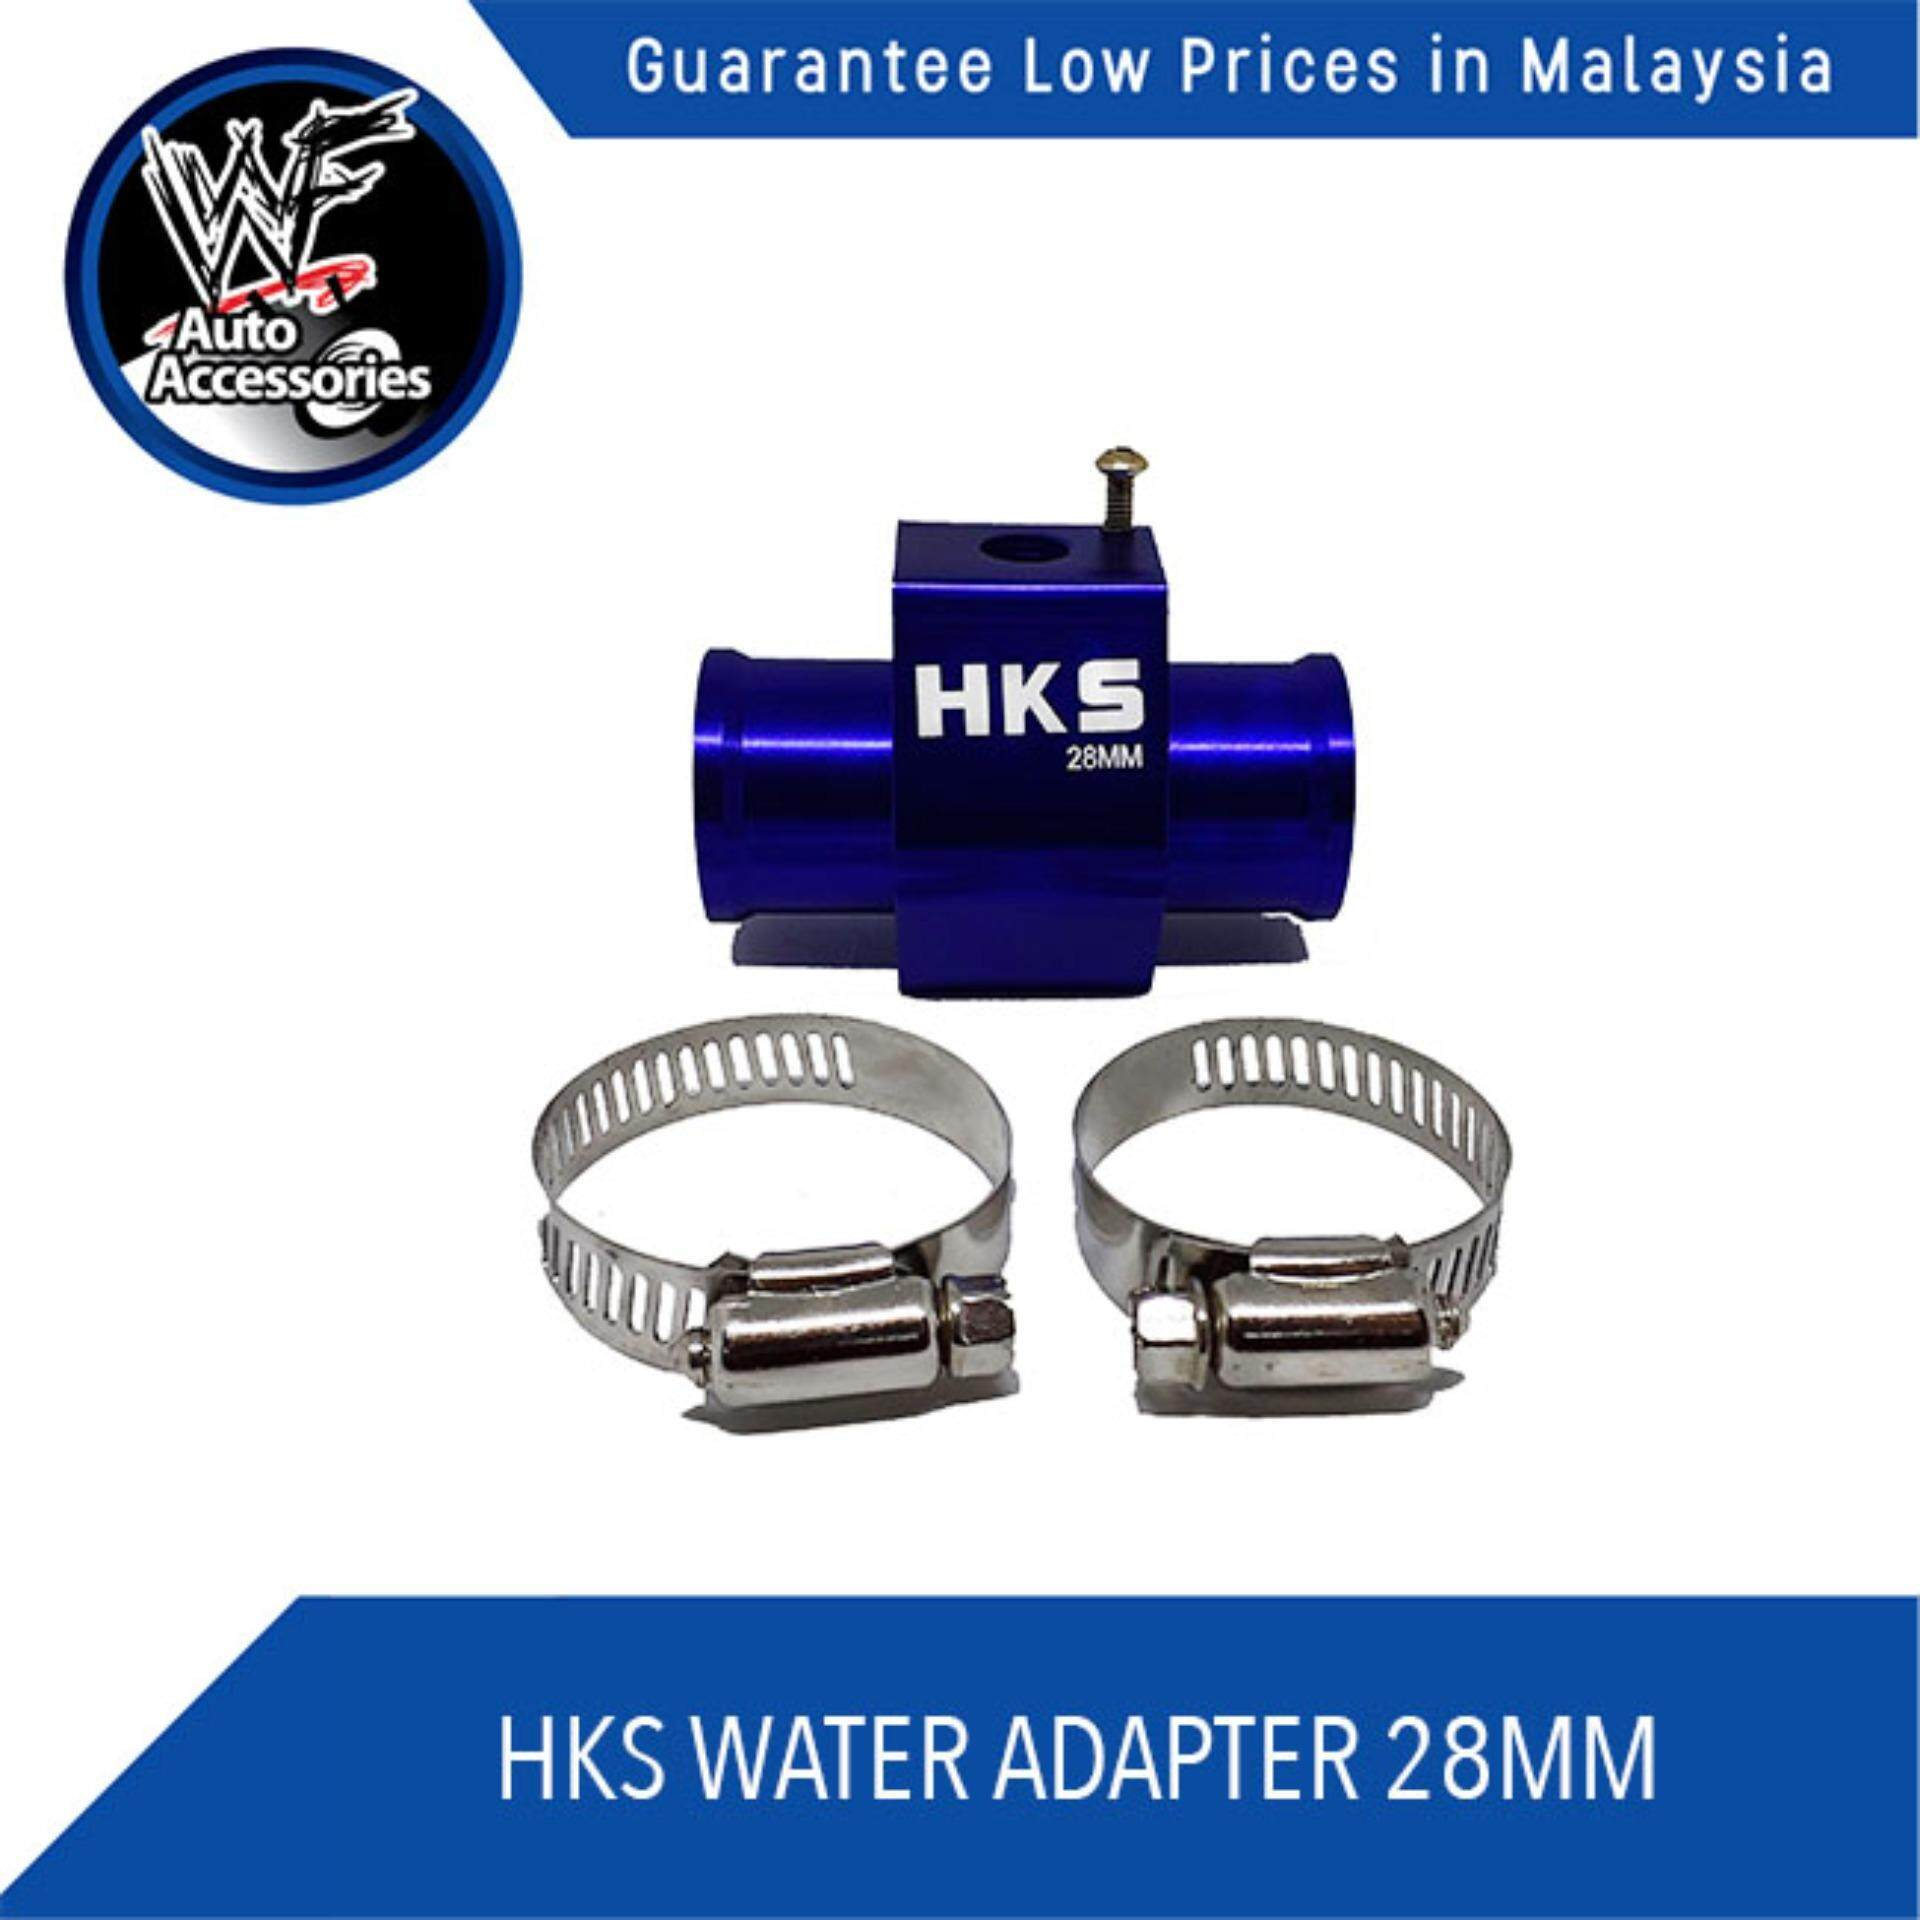 Hks Style Water Temp Adapter - 28mm By Wwf Auto Accessories Sdn Bhd.